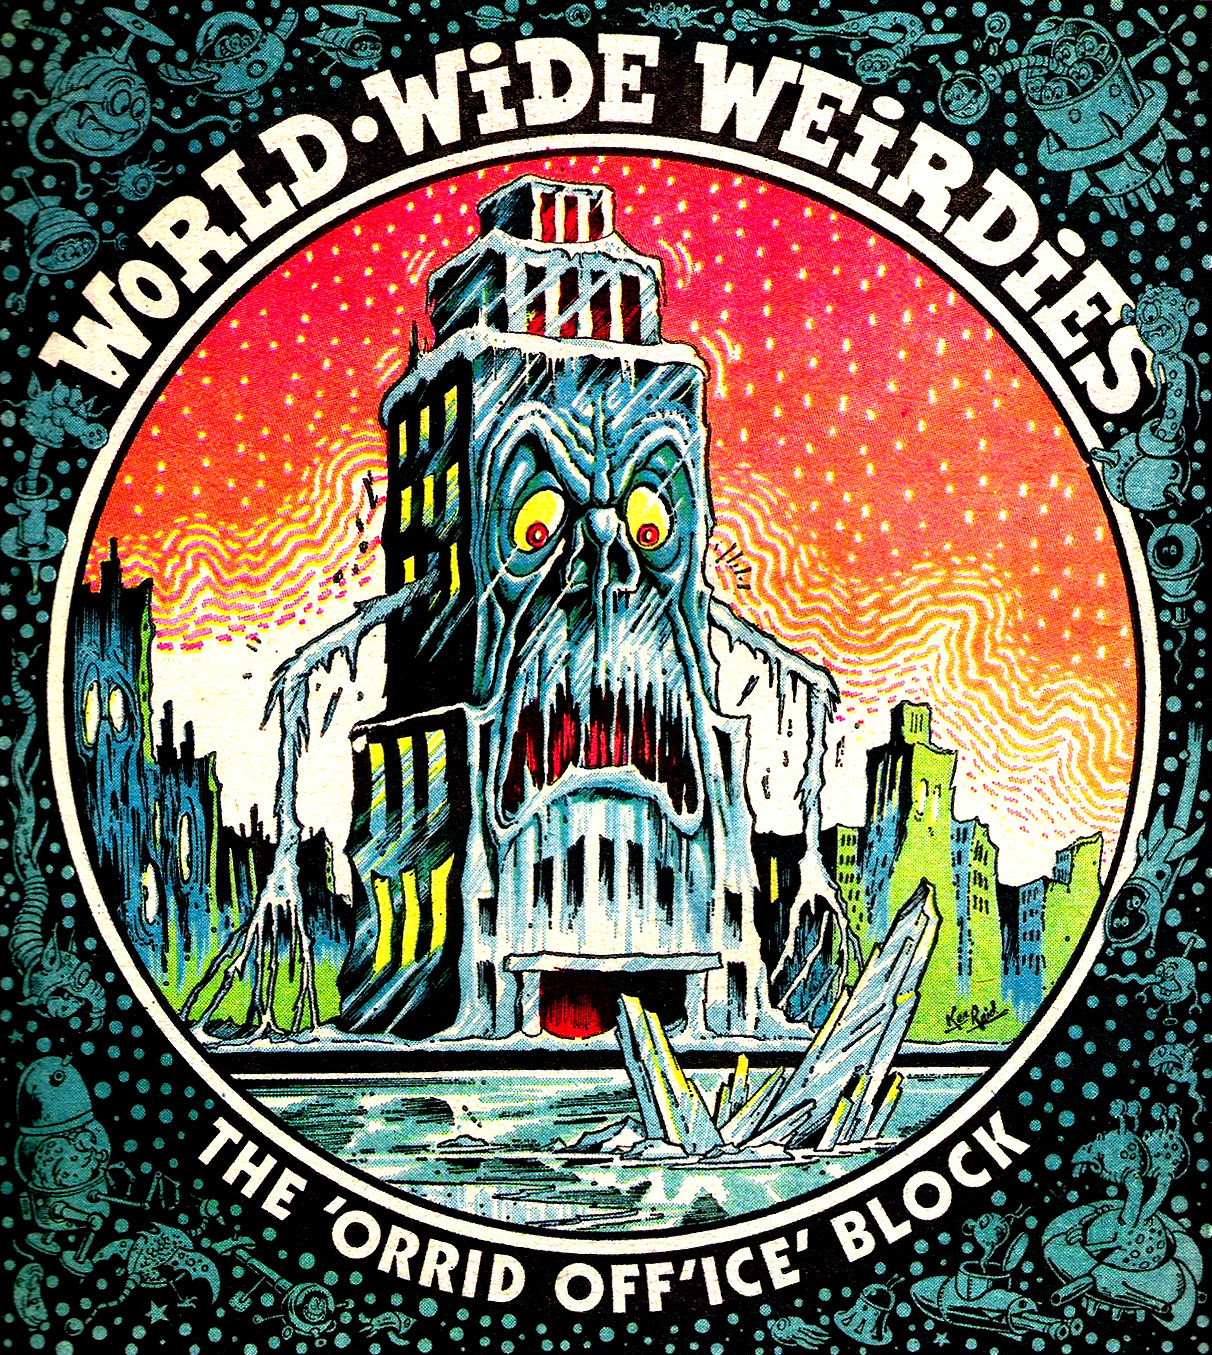 Ken Reid - World Wide Weirdies 55